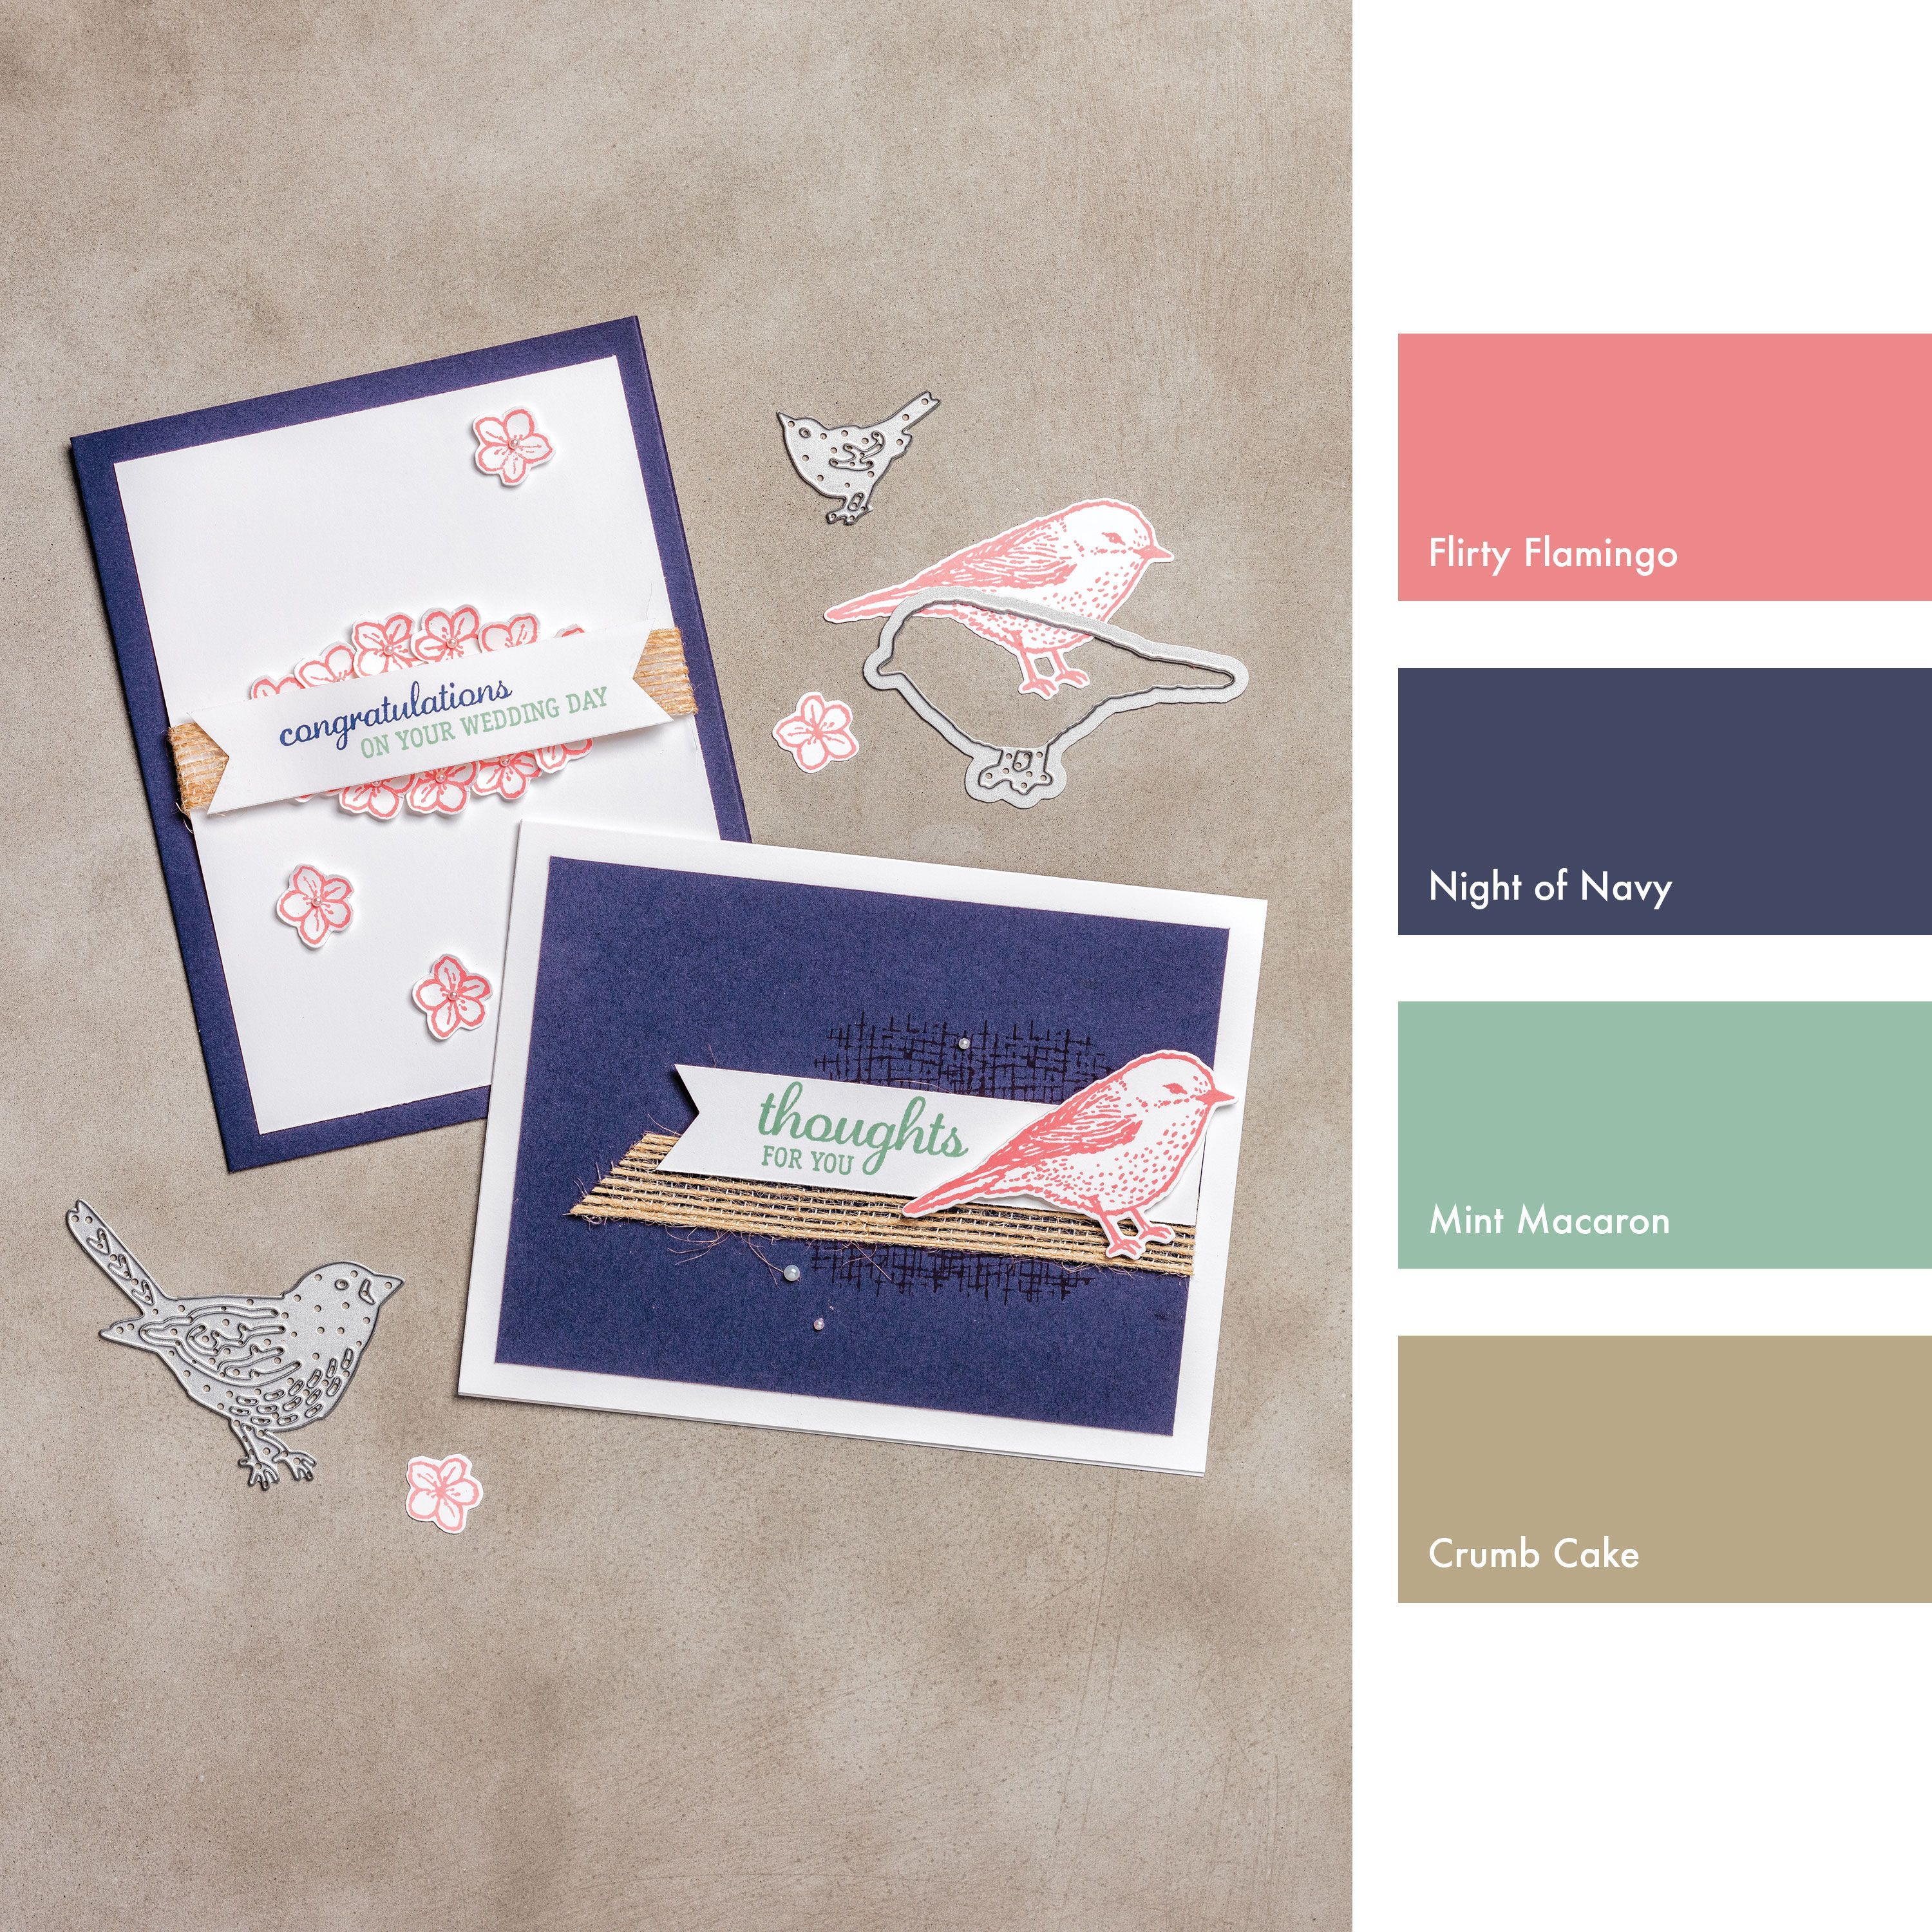 Flirty Flamingo, Night of Navy, Mint Macaron & Crumb Cake